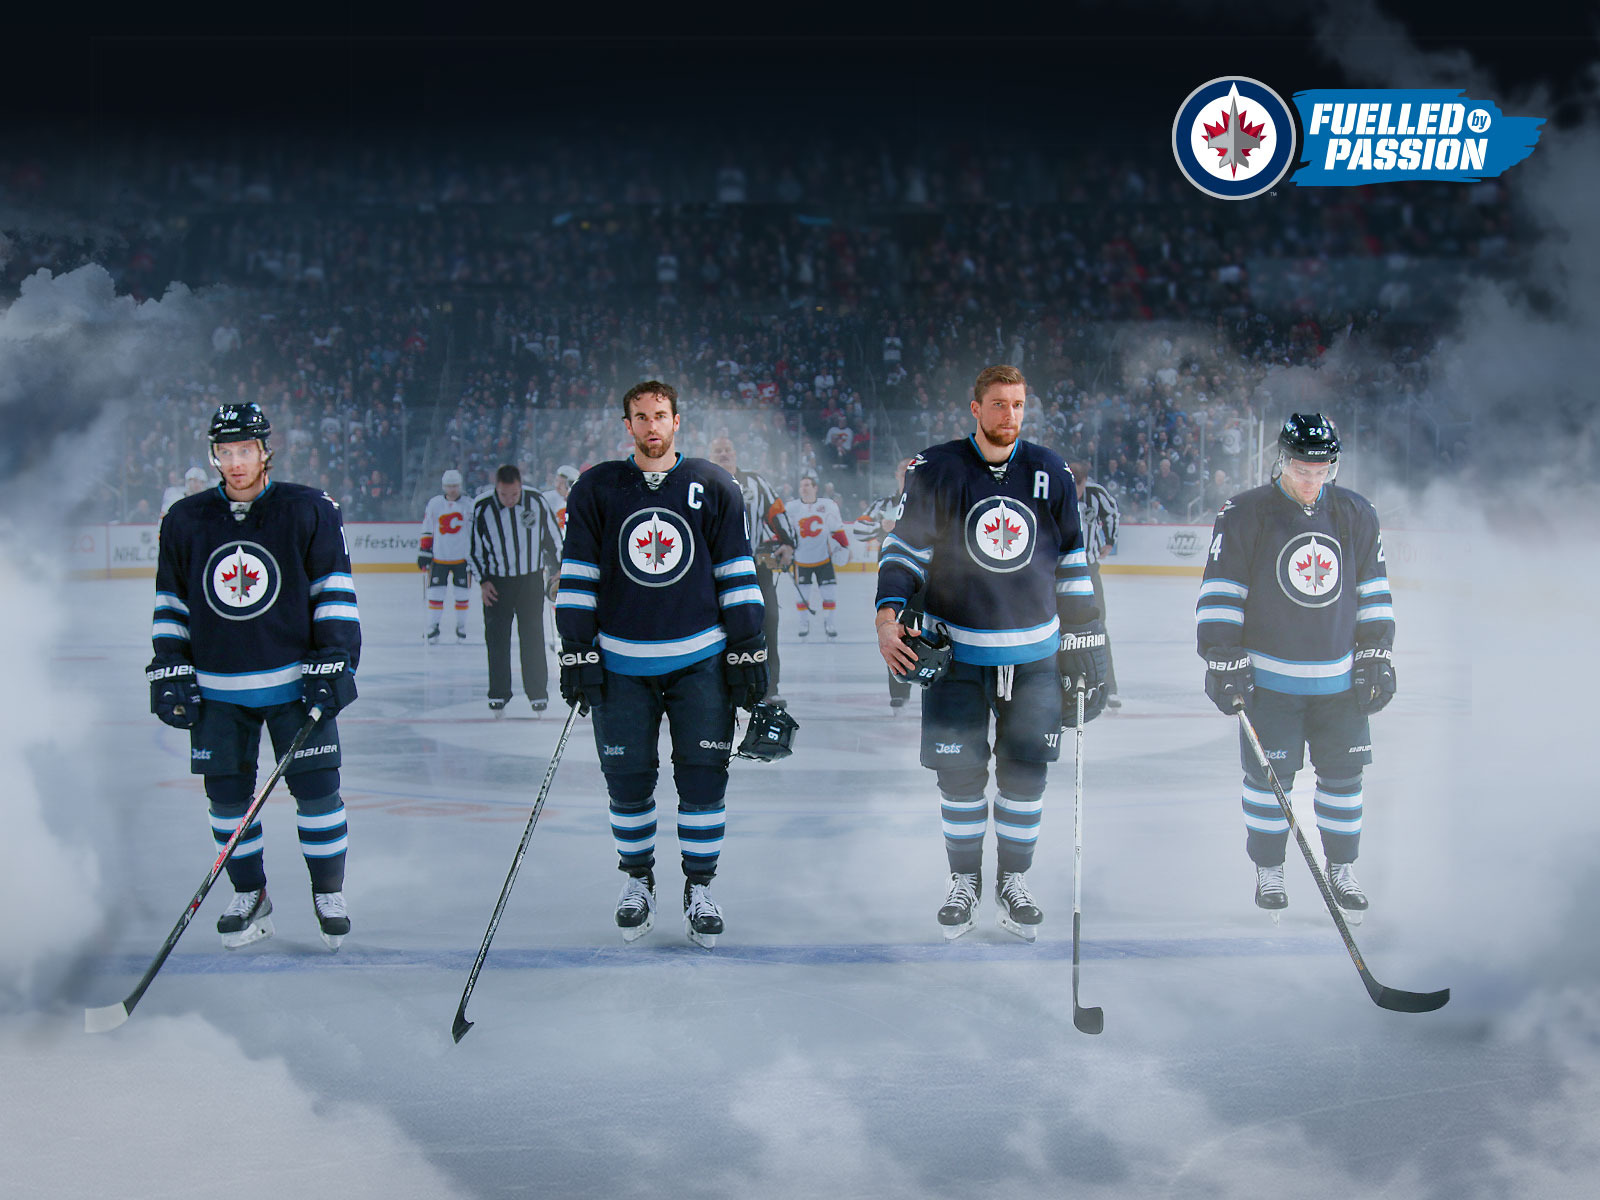 Winnipeg Jets Wallpaper 16   1600 X 1200 stmednet 1600x1200